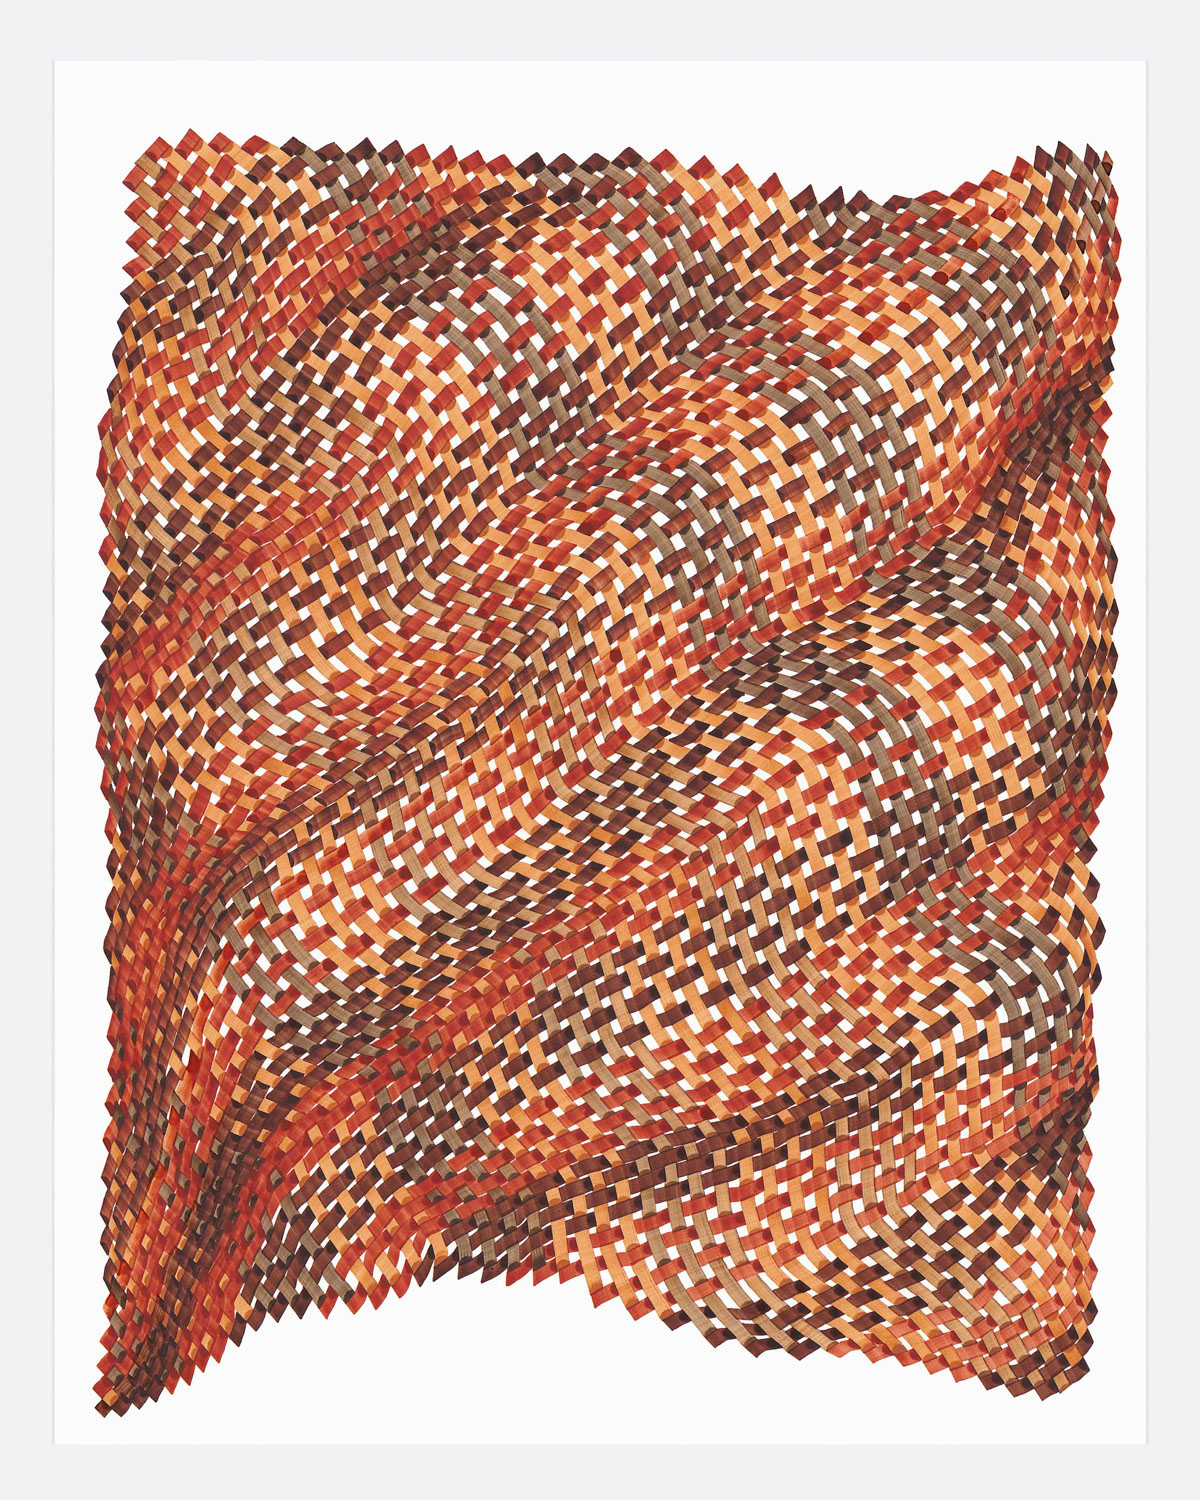 Woven Lines 27 ,  2019   acrylic on yupo heavy 14 x 11 in (35.56 x 27.9 cm)